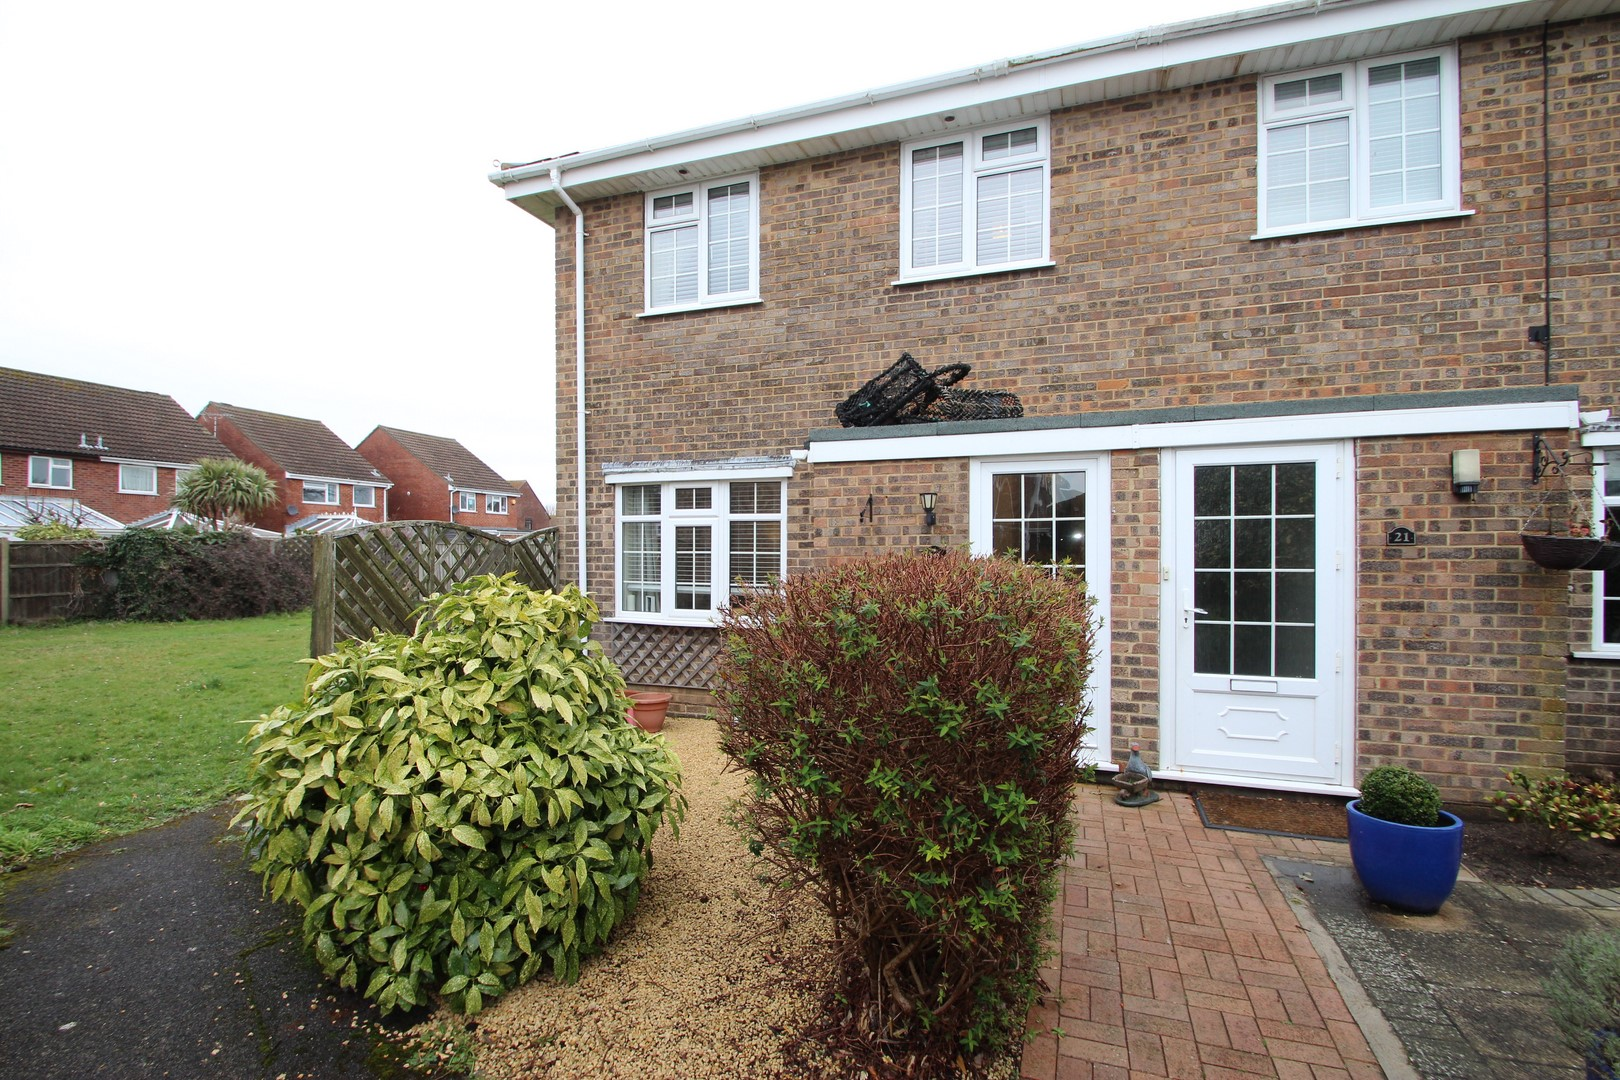 3 Bedroom House in Mudeford